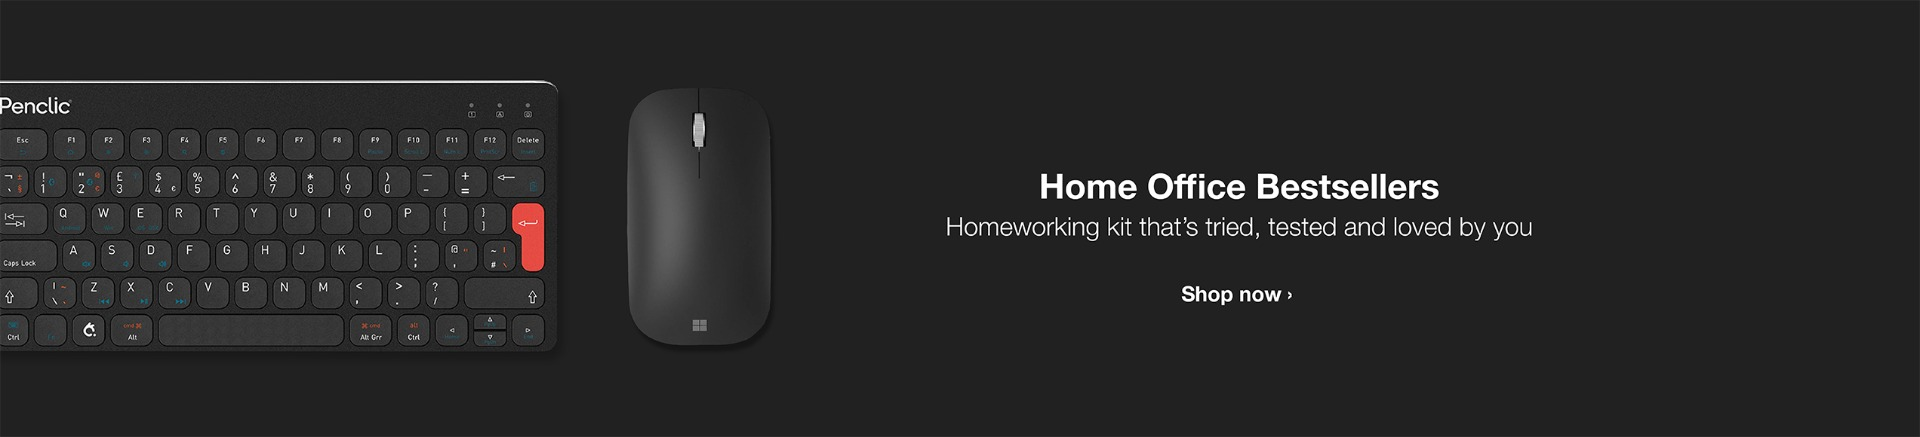 Homeworking kit that's tried, tested and loved by you